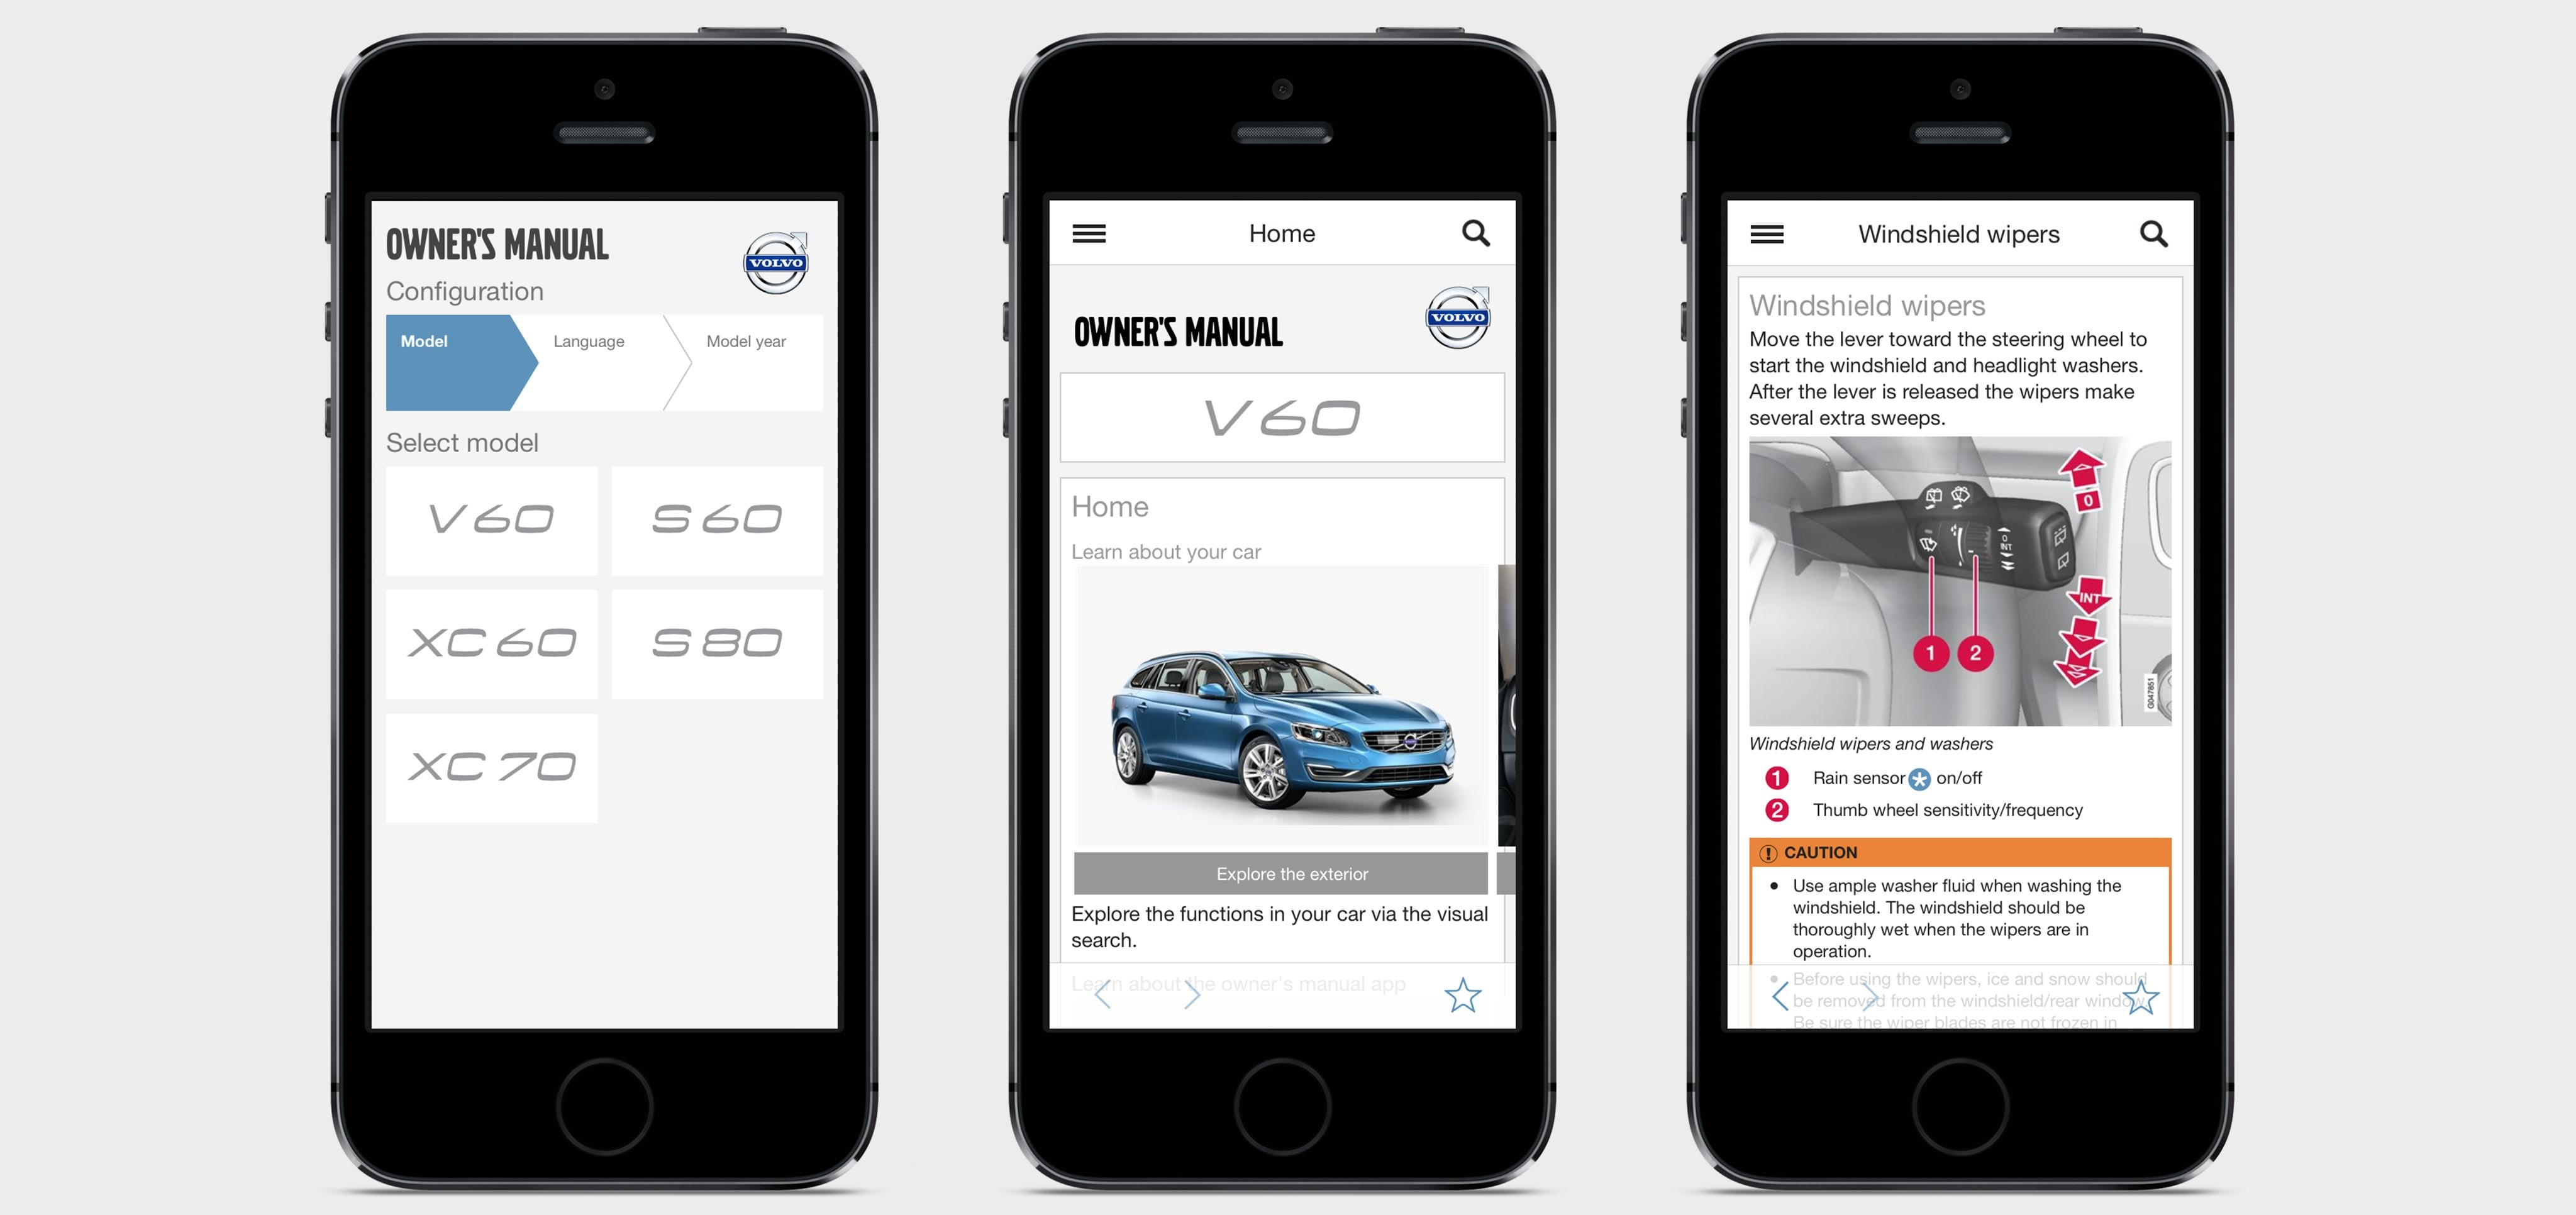 Volvo manuals on your mobile. Download the app to get user guides and  videos, right on your phone or tablet.